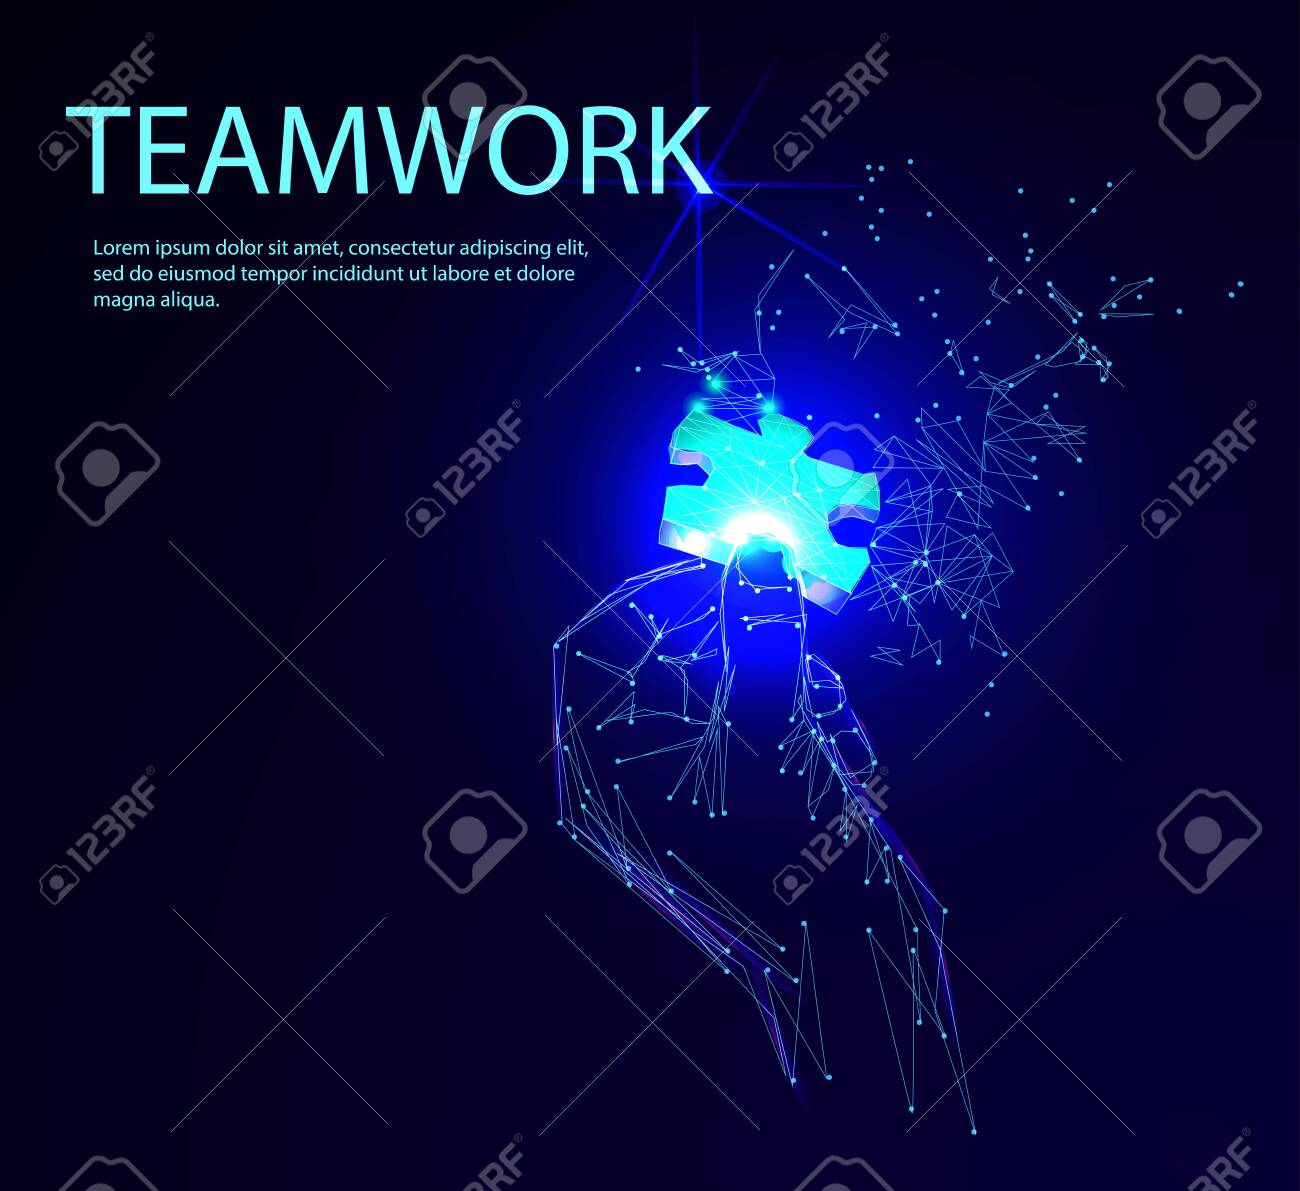 Abstract puzzle on dark blue background. Network or teamwork symbol composed of polygons. Low poly vector illustration of a starry sky or Cosmos, consists of lines, dots and shapes - 123516895